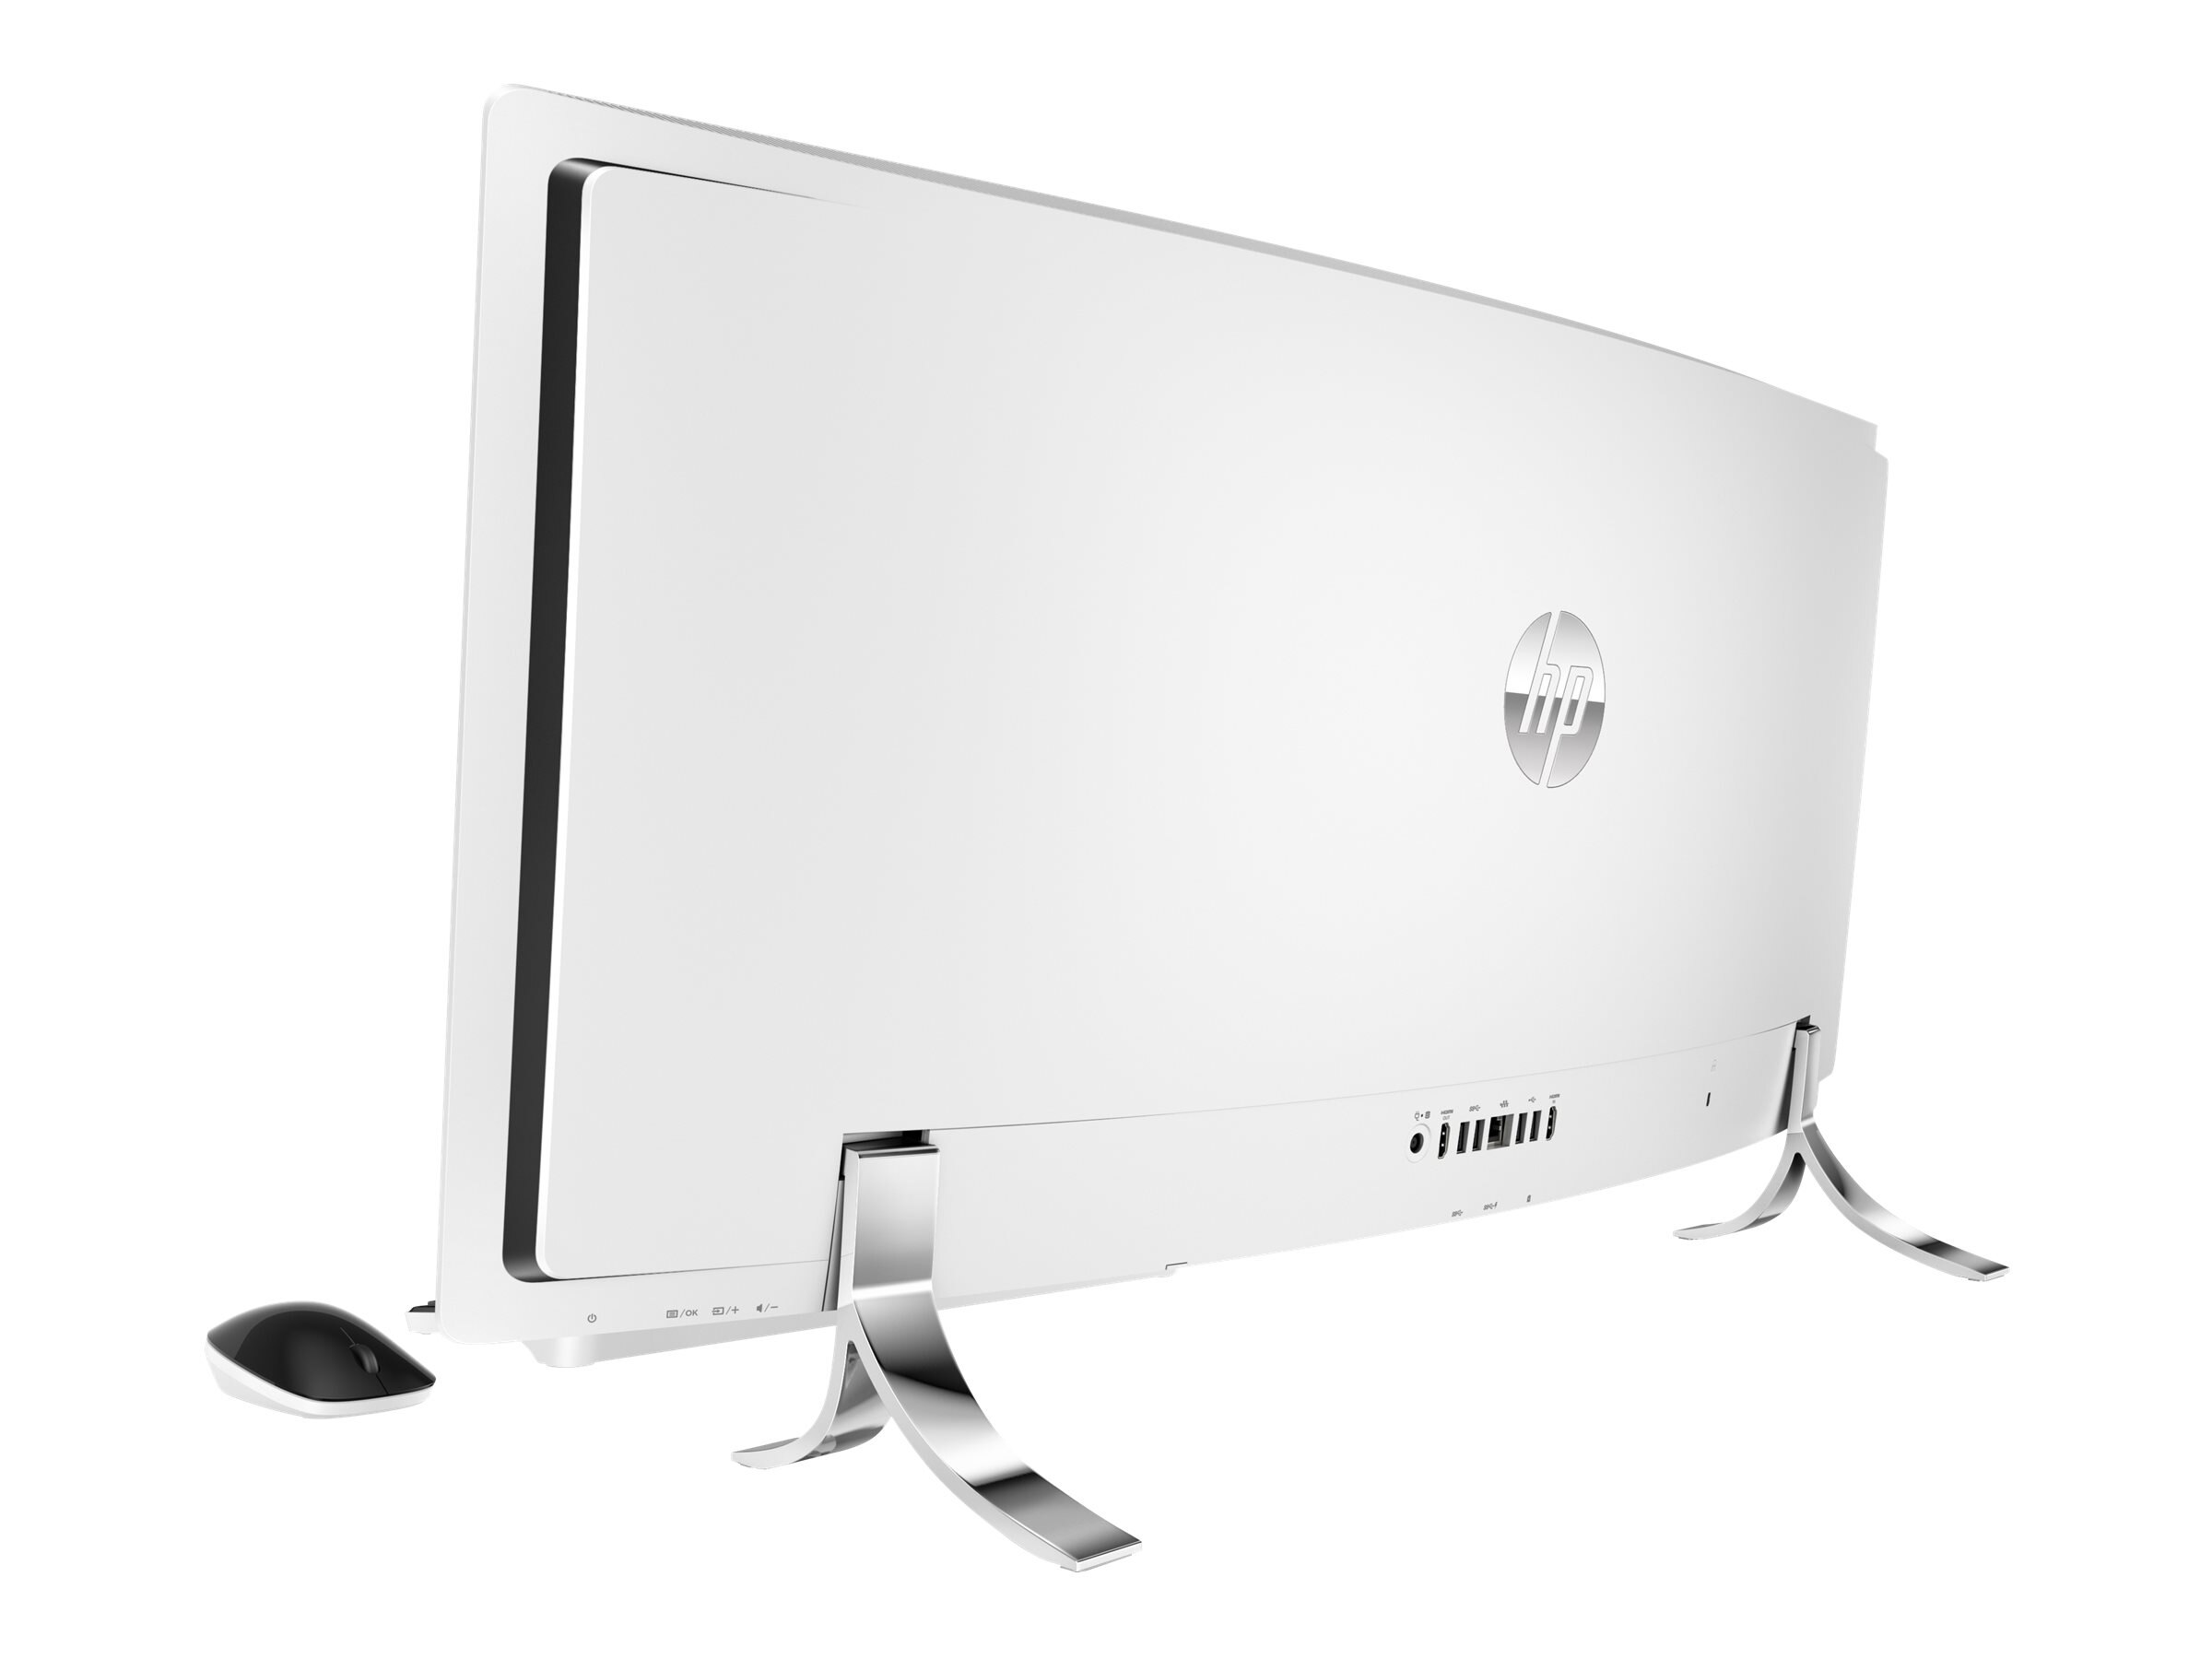 HP Envy 34-a010 Curved AIO Core i5-6400T 2.2GHz 12GB 1TB GeForce960A GbE ac BT WC 34 QHD+ W10H, M9Z77AA#ABA